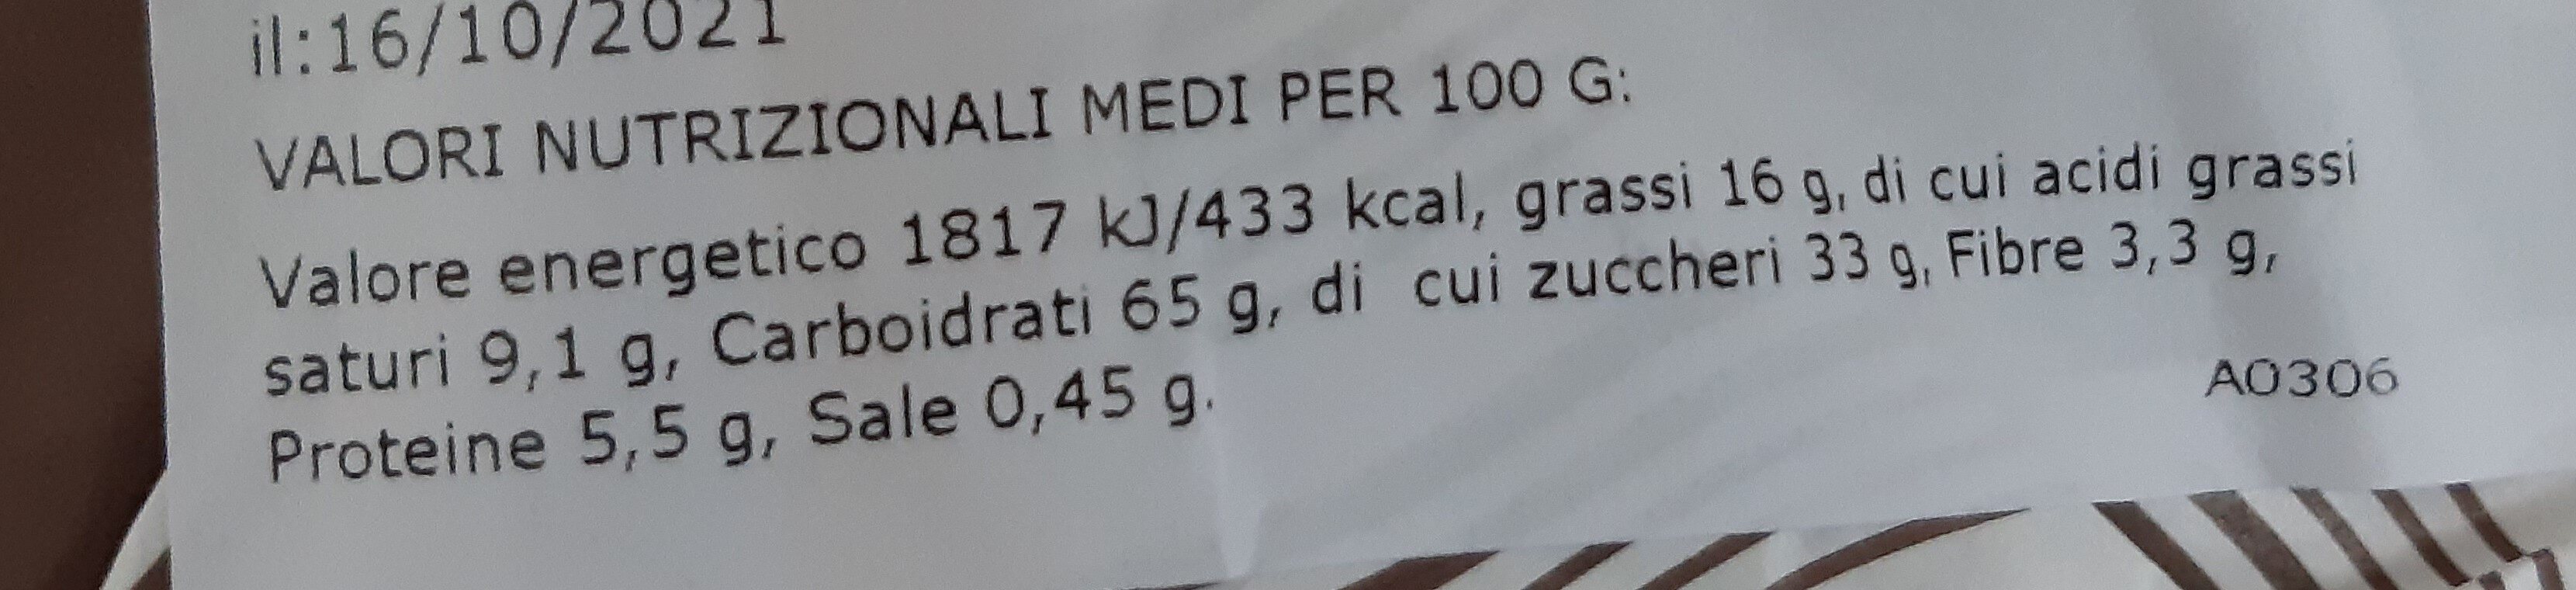 Pandolce Basso Genovese - Nutrition facts - it